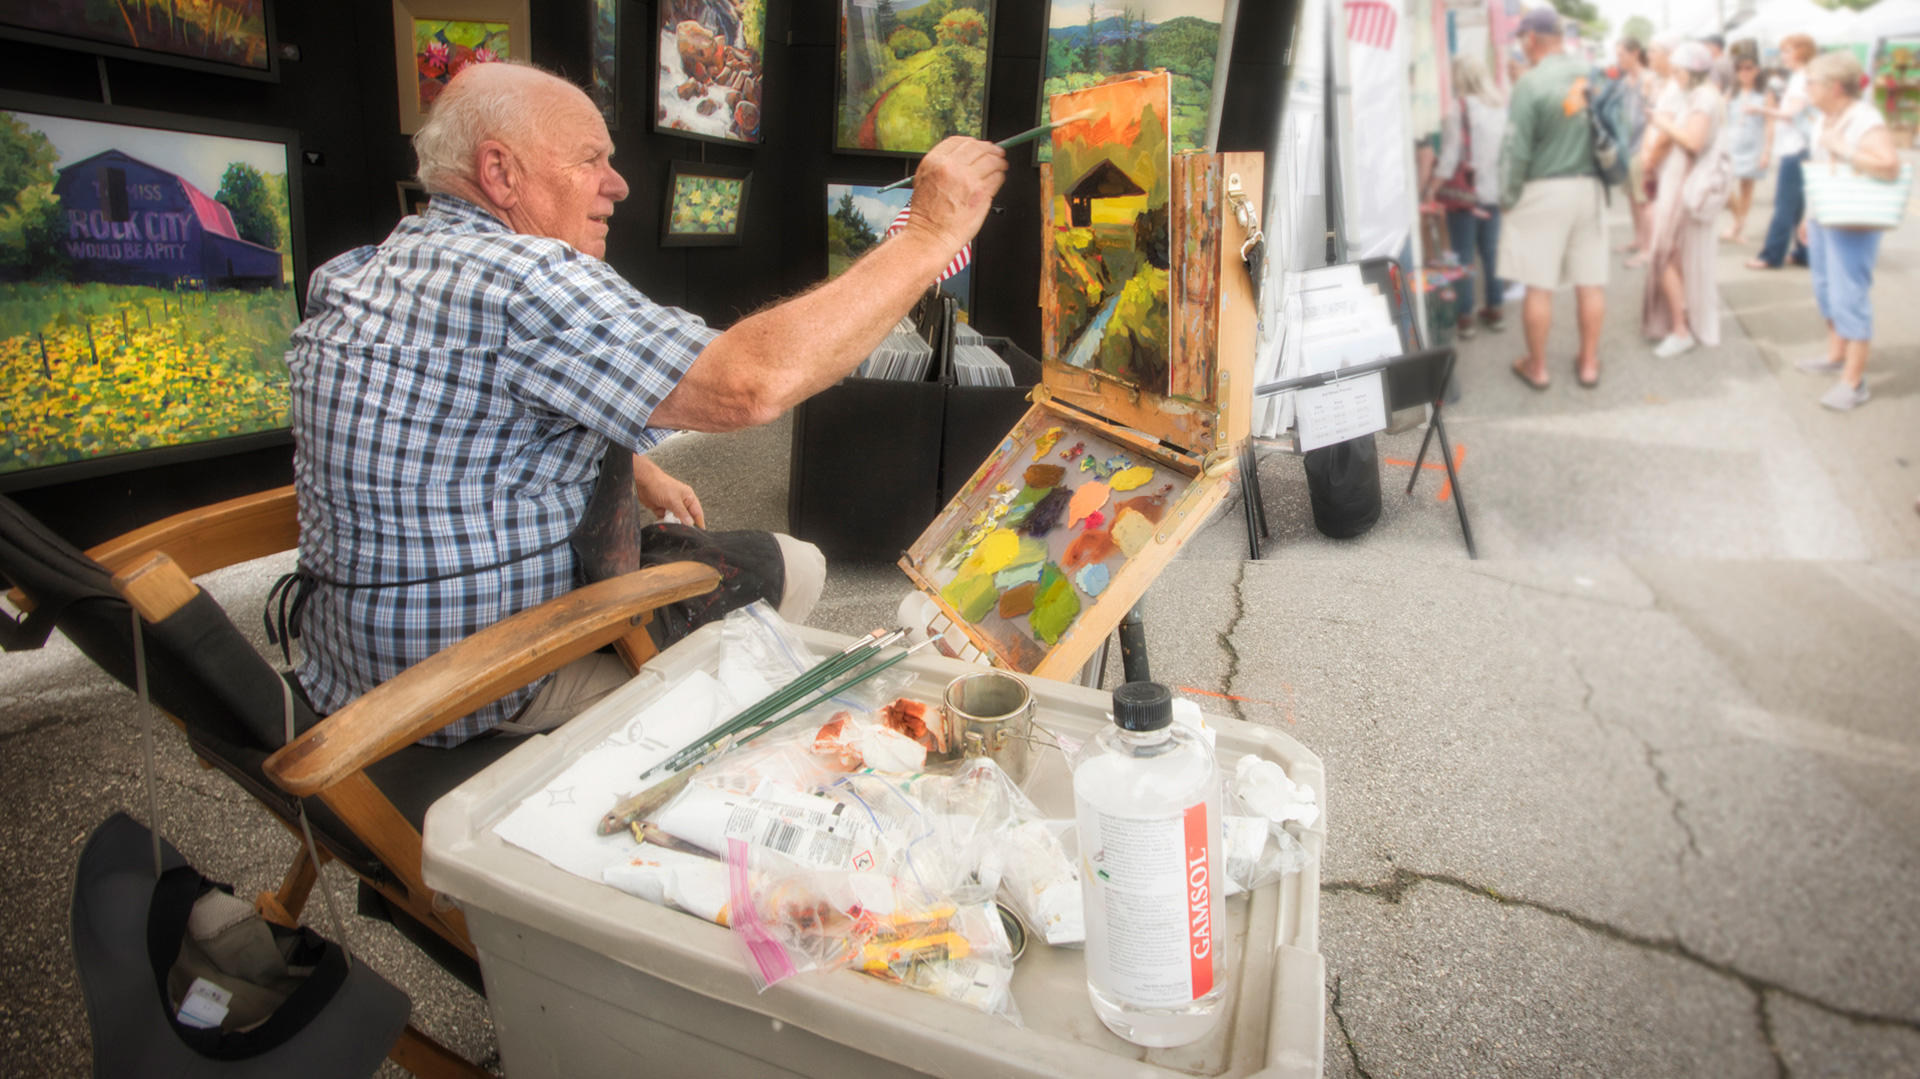 An older gentleman paints in a booth outside at Blue Ridge Arts in the Park.